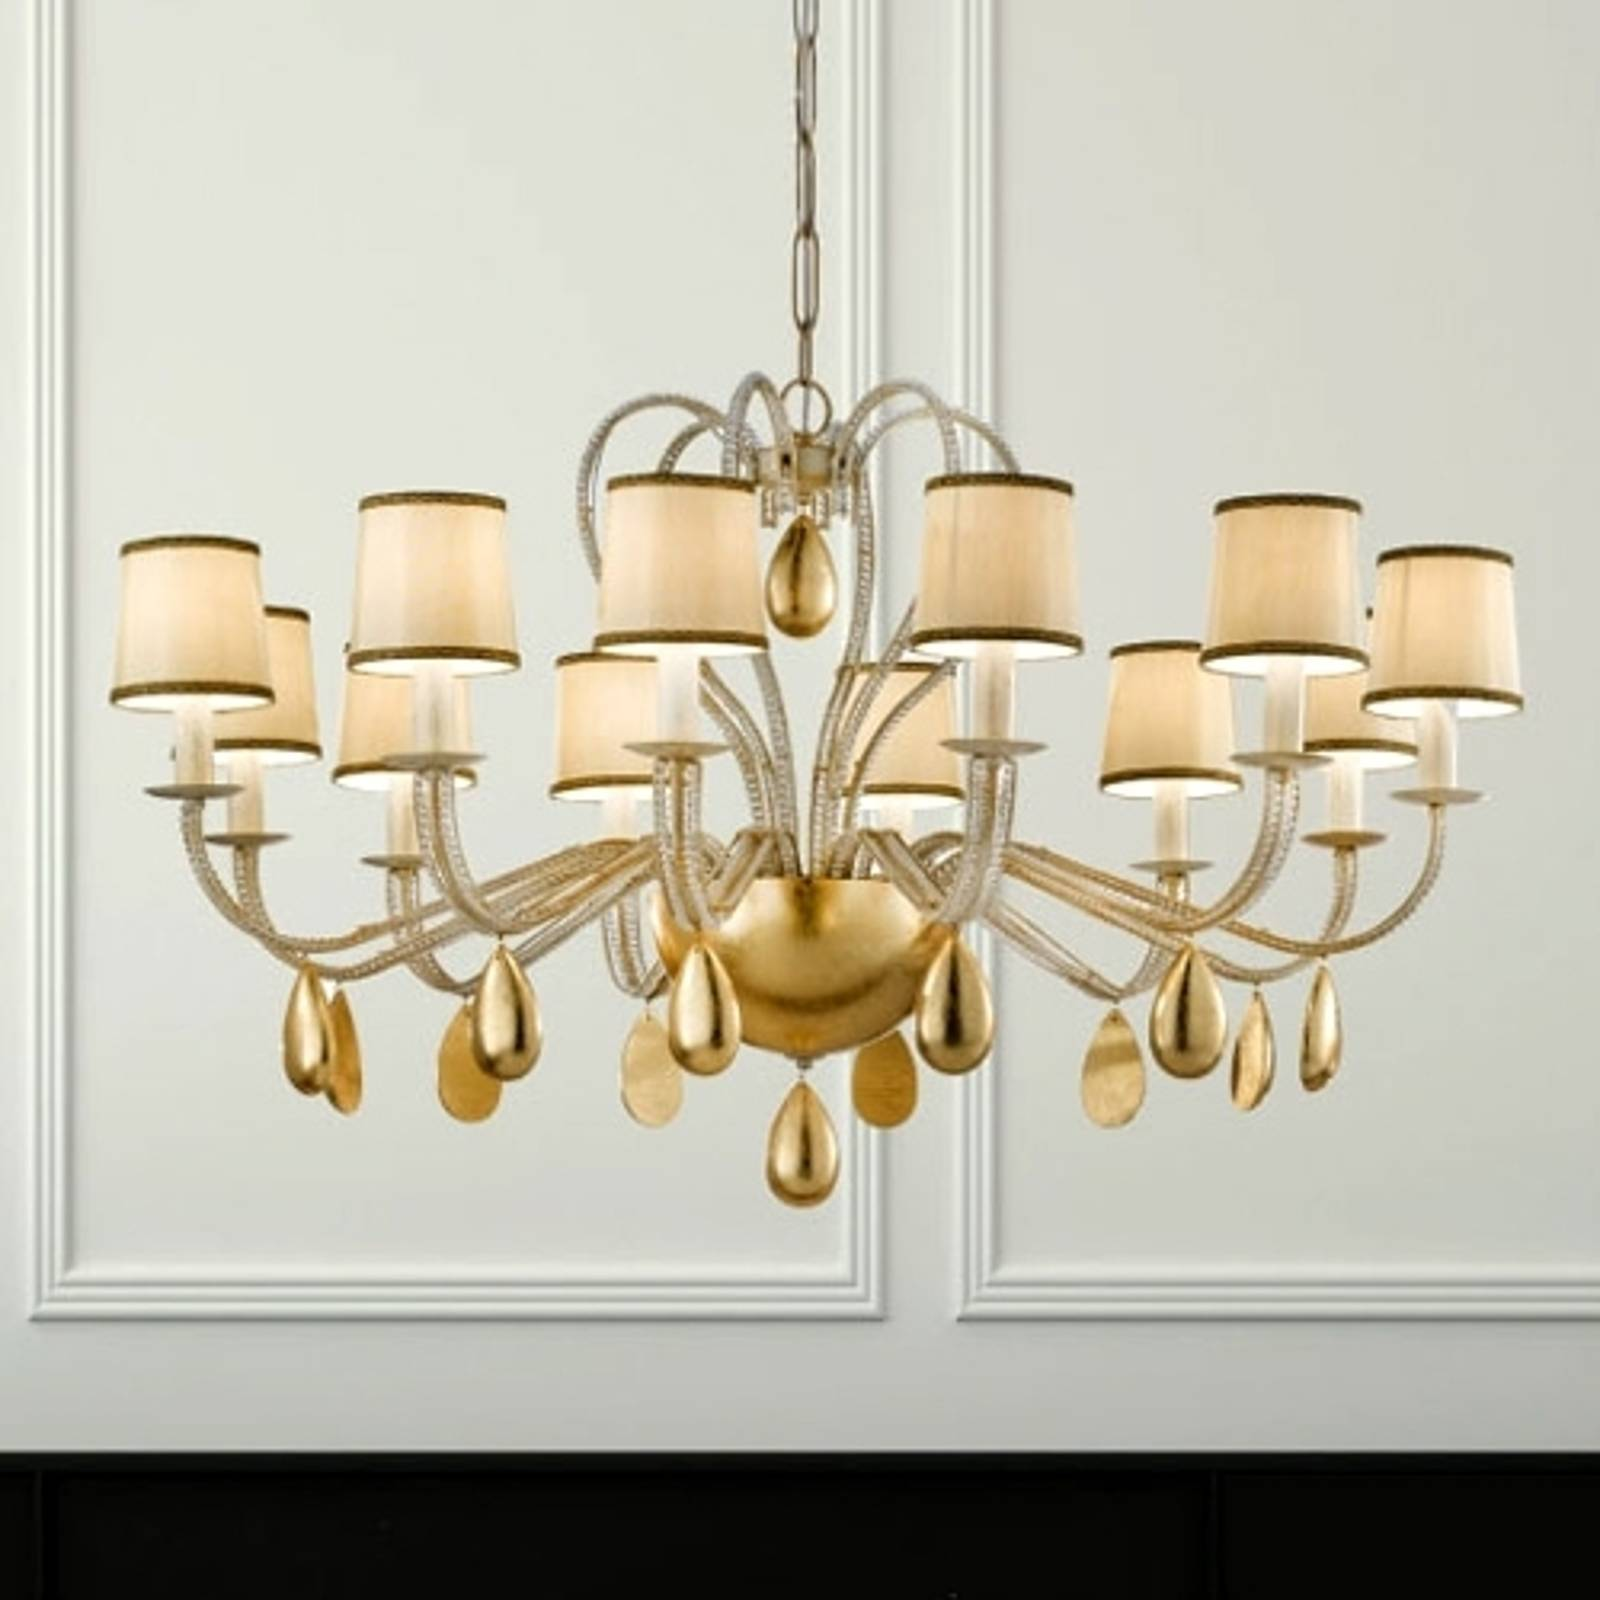 ANOUK cream-coloured chandelier 115 cm from Masiero